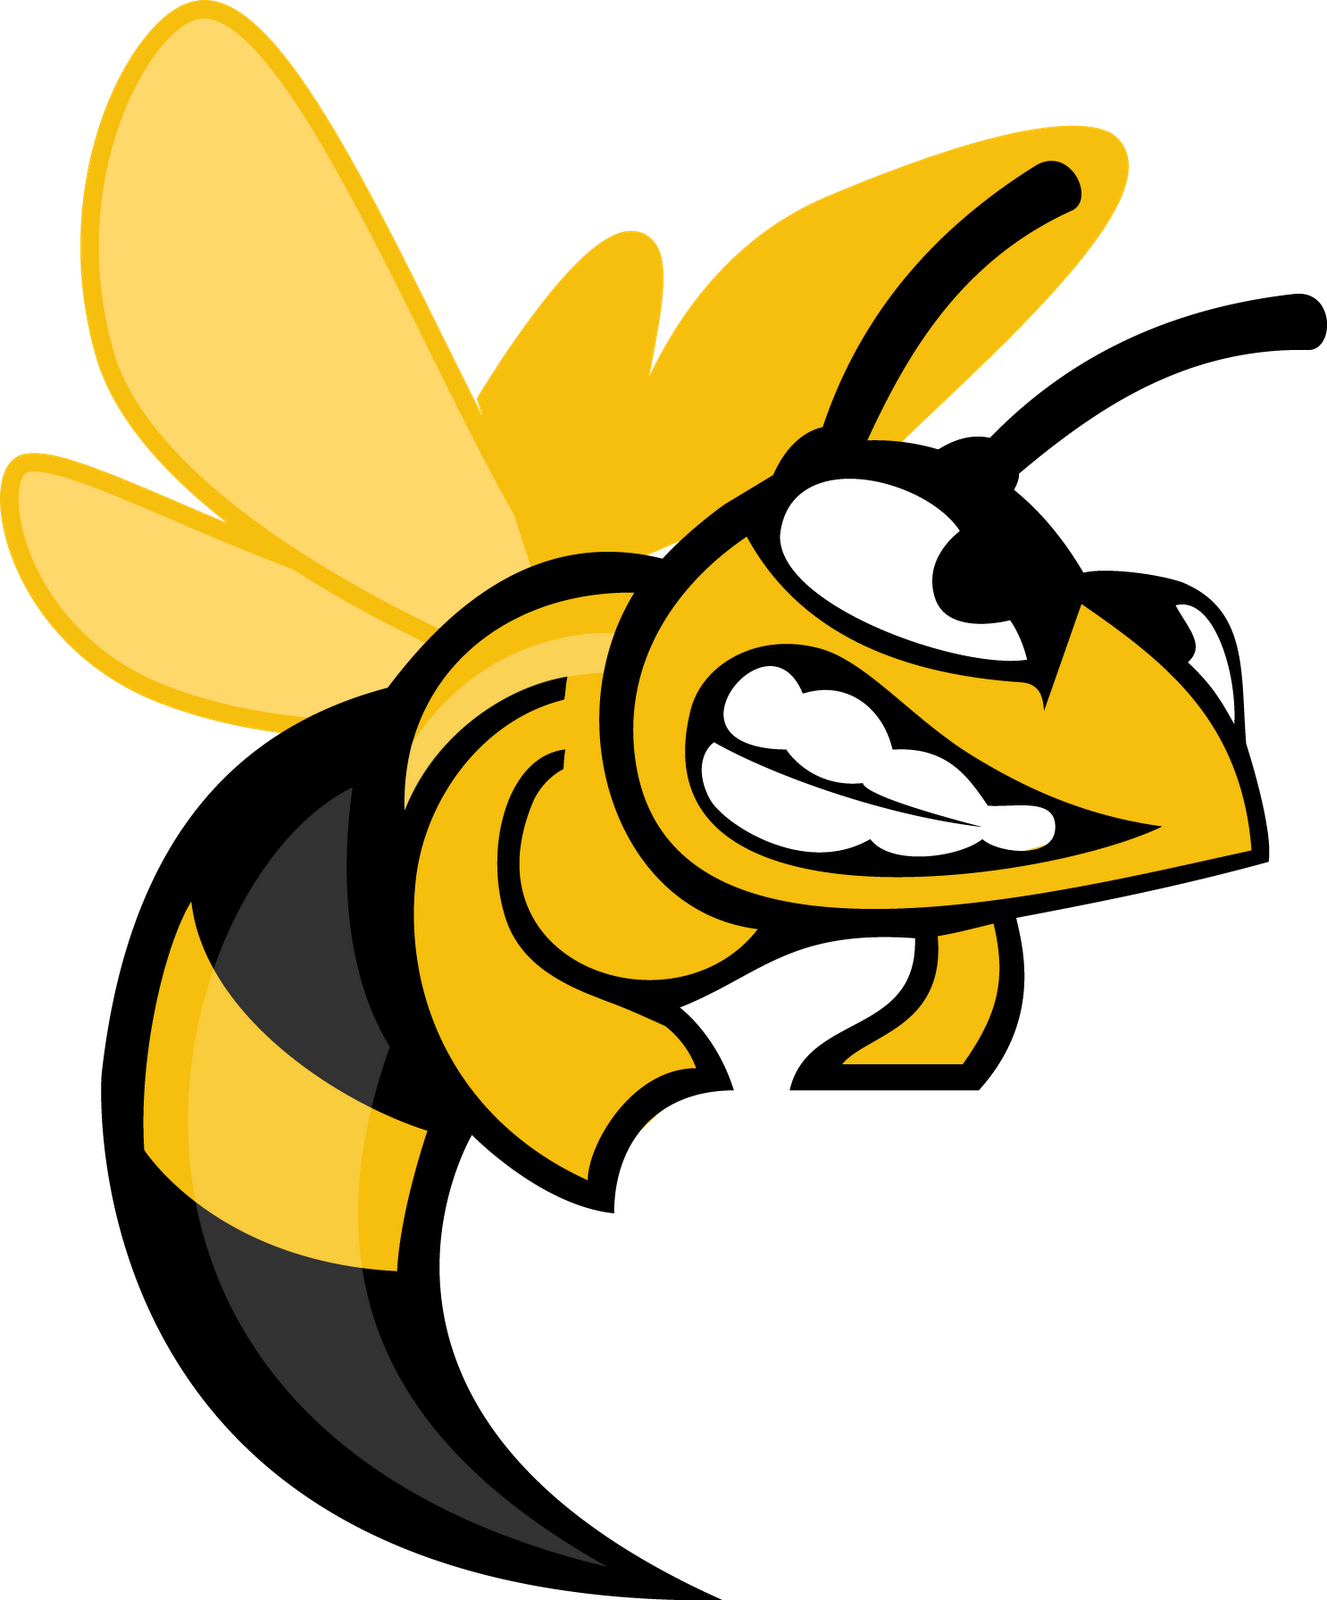 Hornet Clipart Cliparts And Others Art I-Hornet clipart cliparts and others art inspiration-9